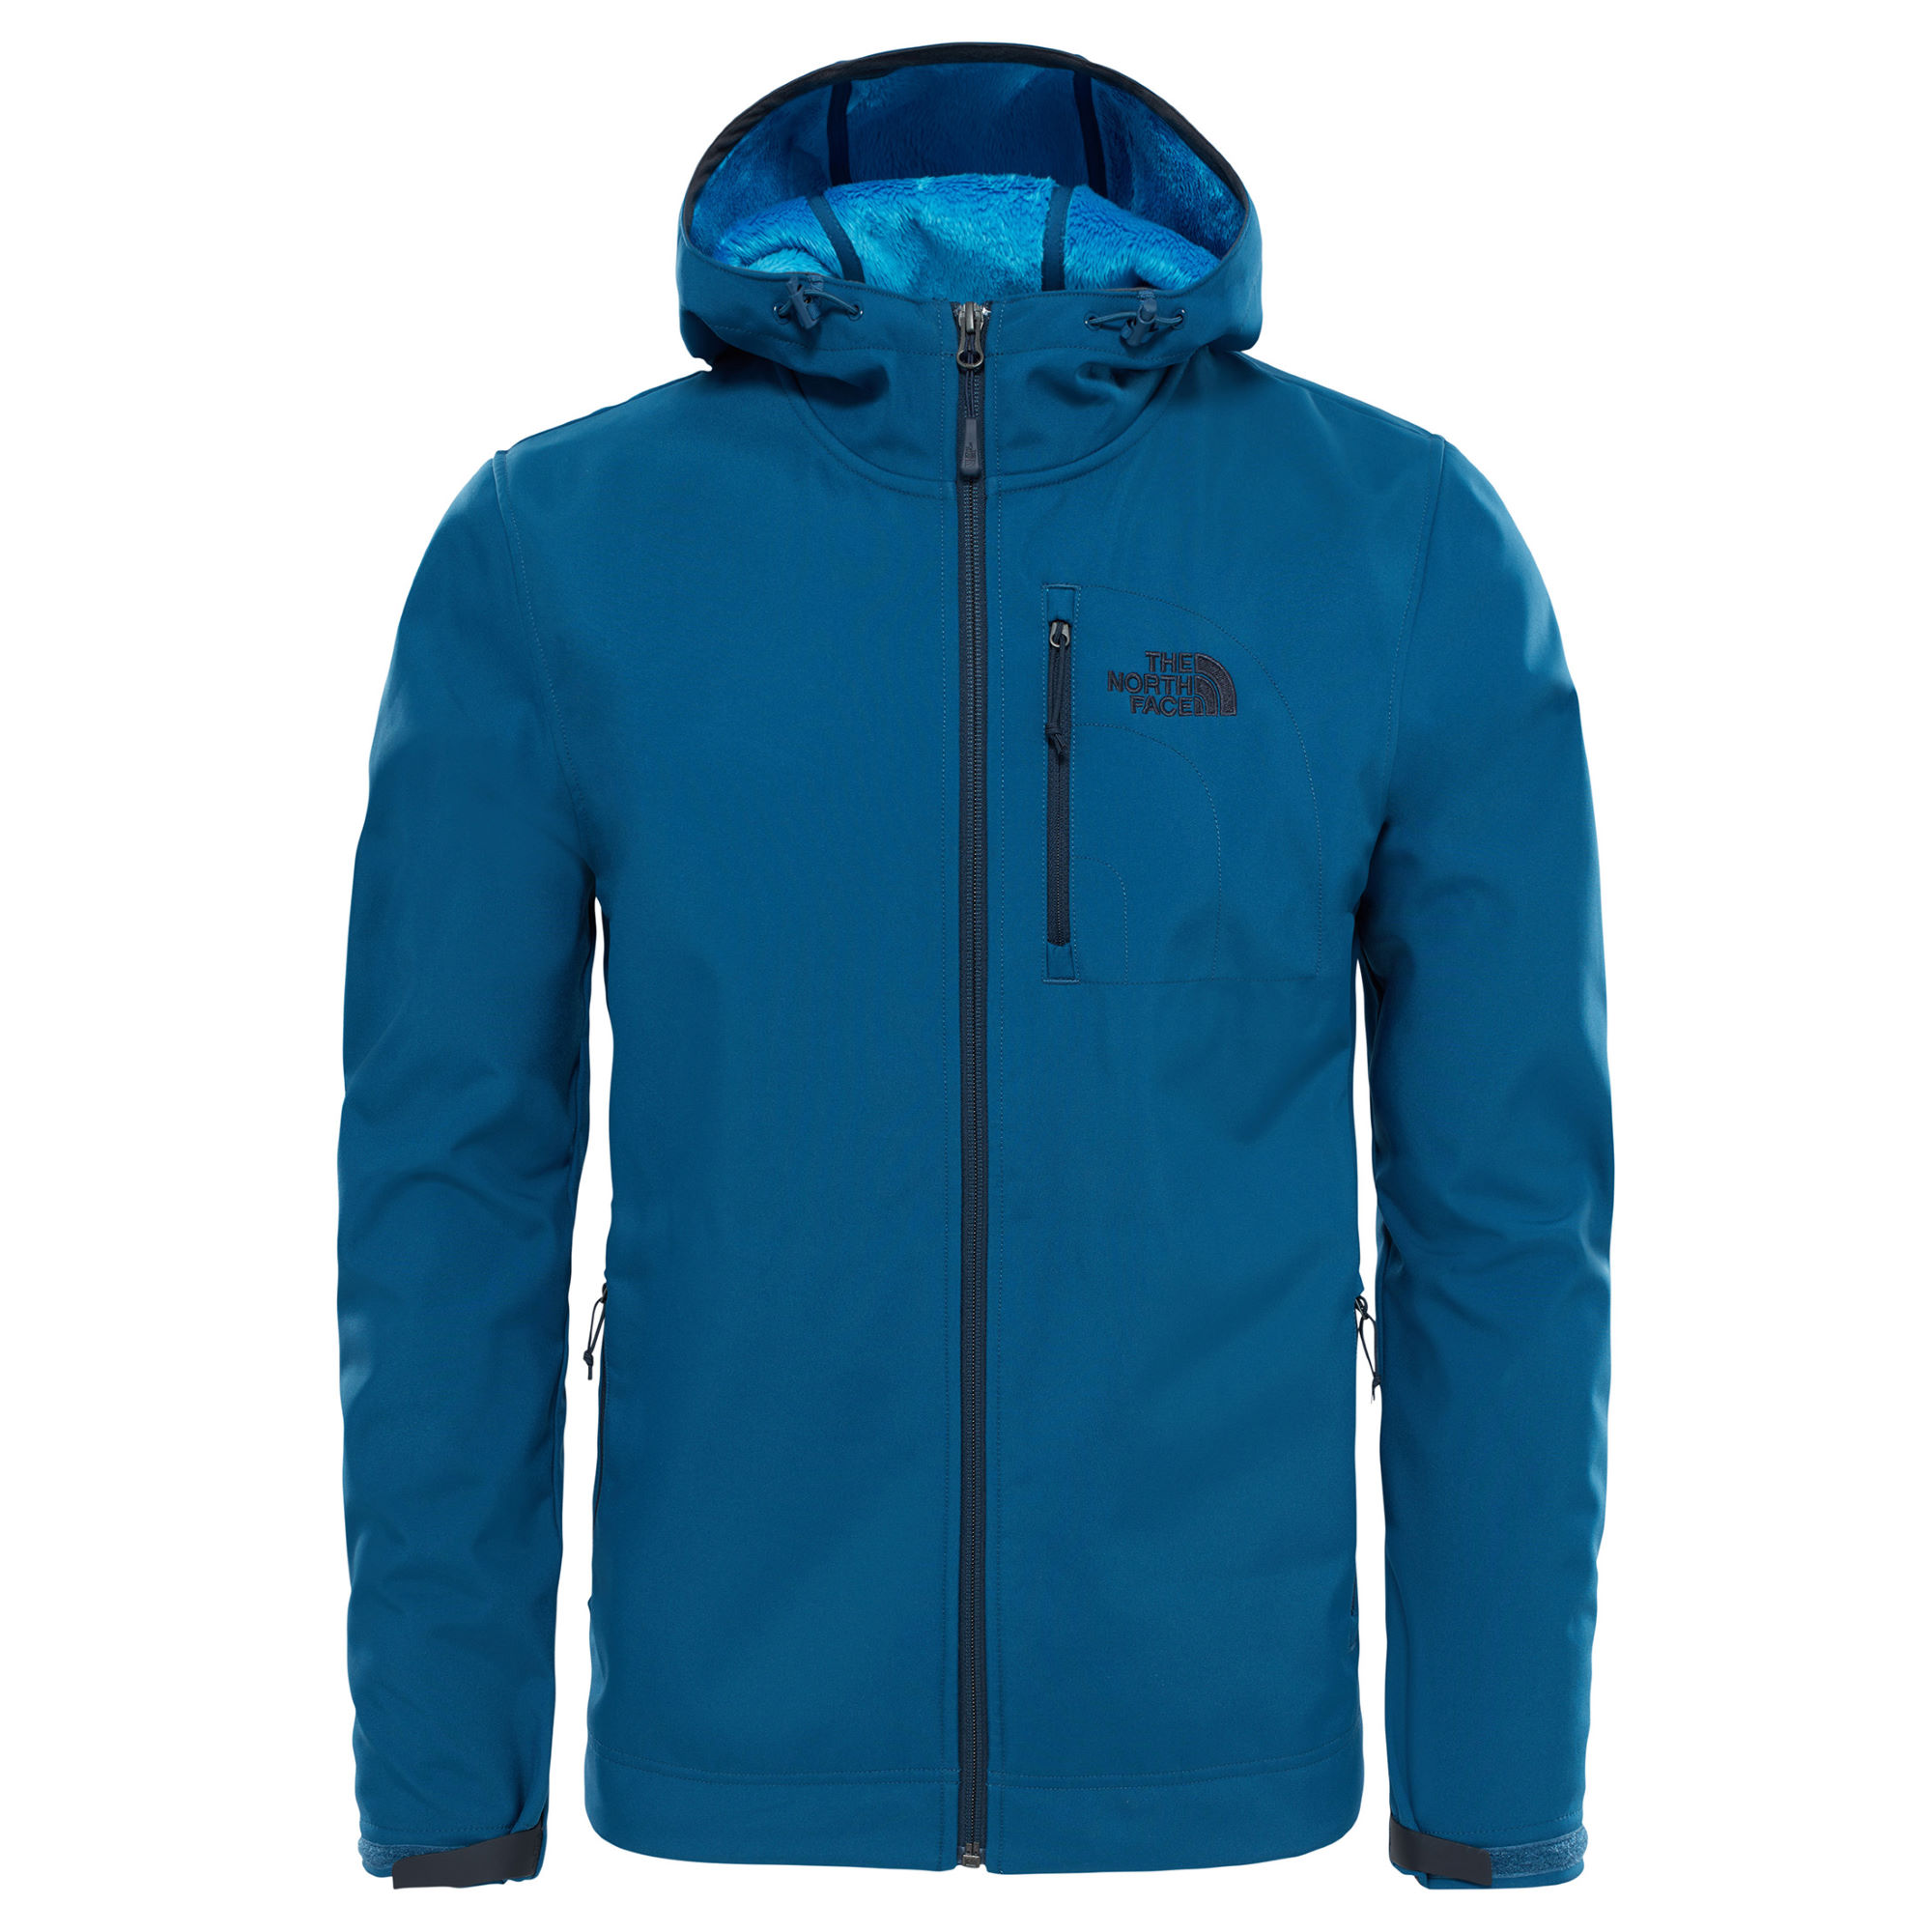 North face sweat jacket